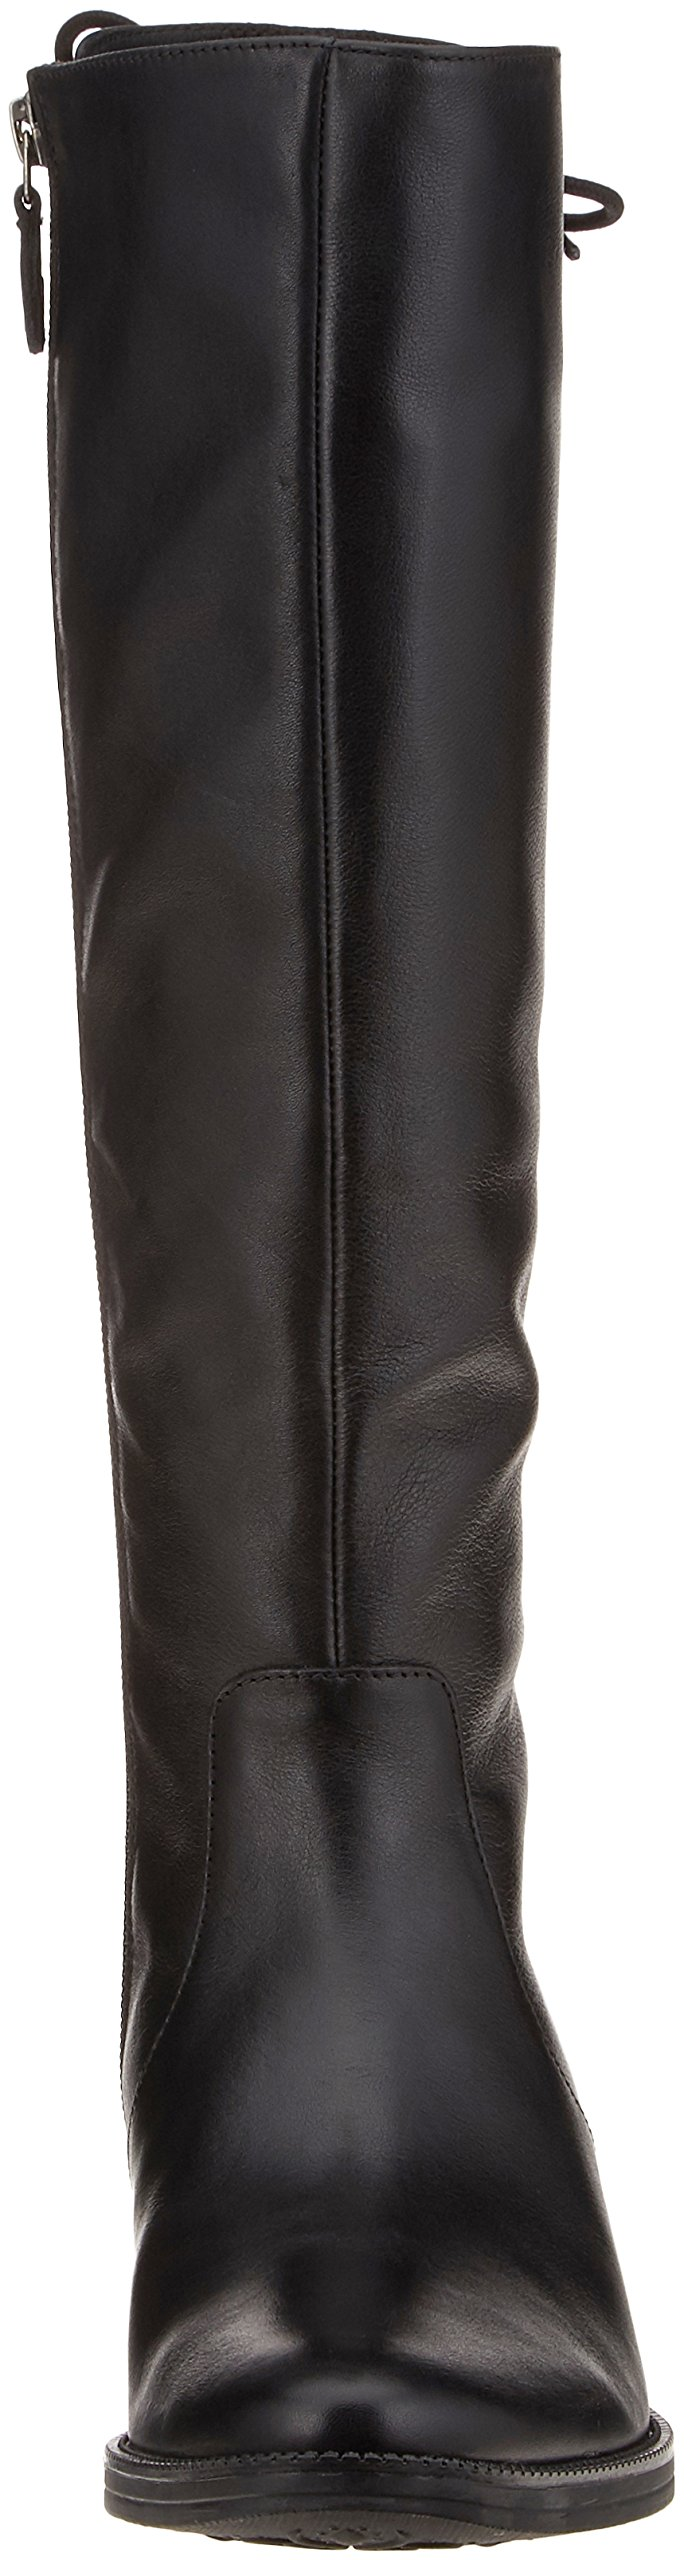 popular stores factory outlets vast selection Details about Geox Women's Mendi Boot 44 Winter, Black, 35 EU/5 - Choose  SZ/color